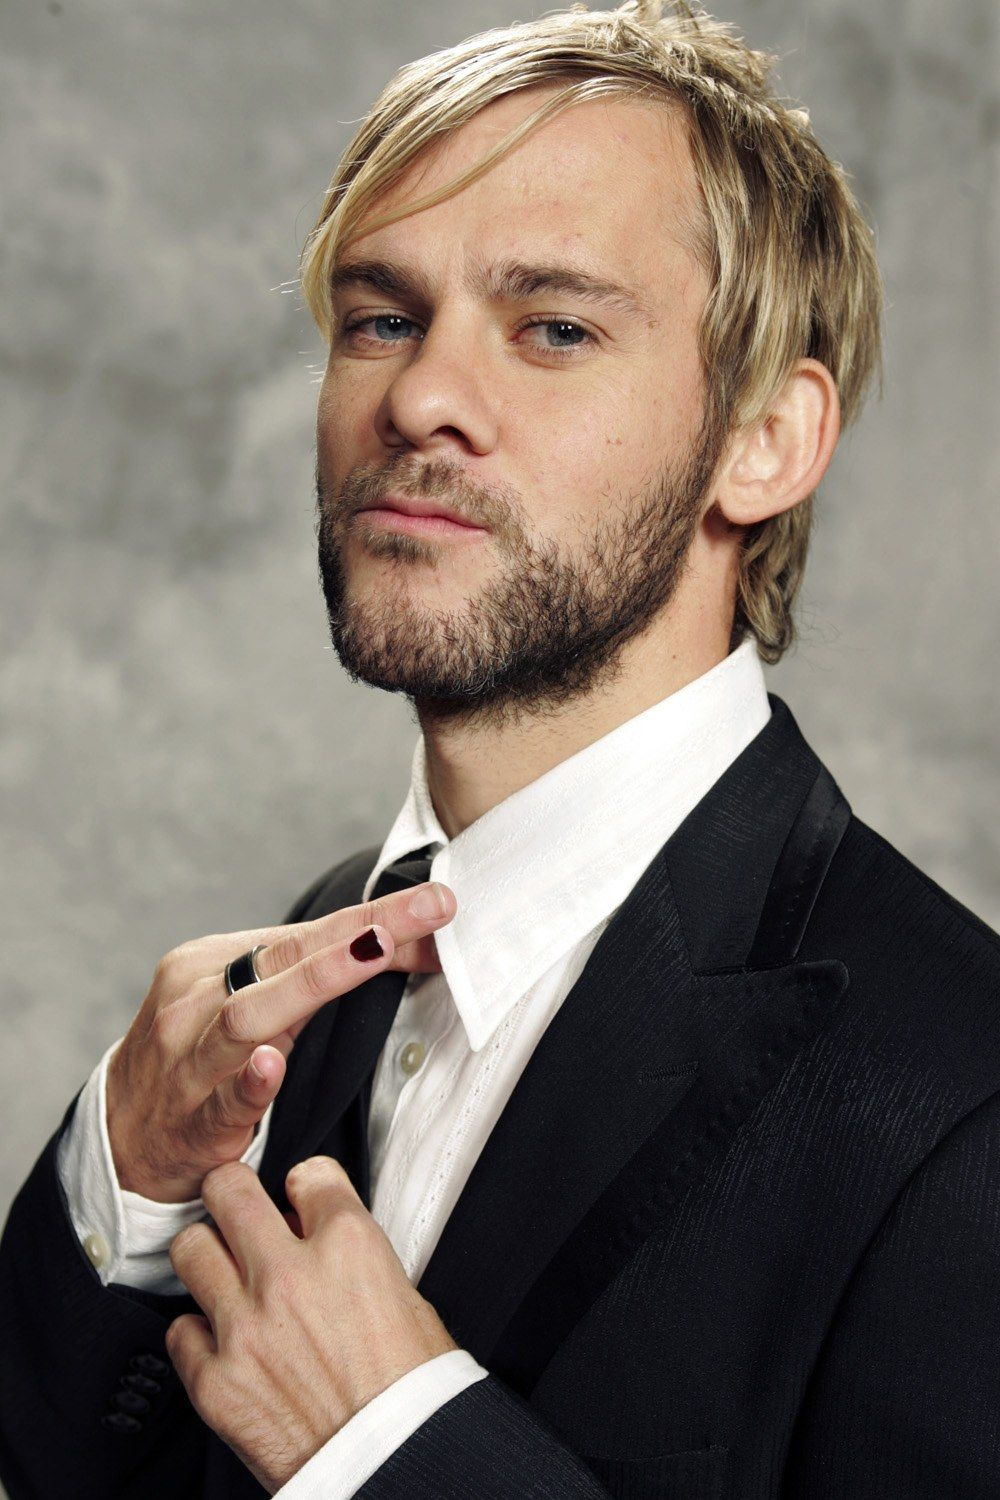 Dominic Monaghan Hairstyle » Hairstyles for Men. Suit and tie, beard ...